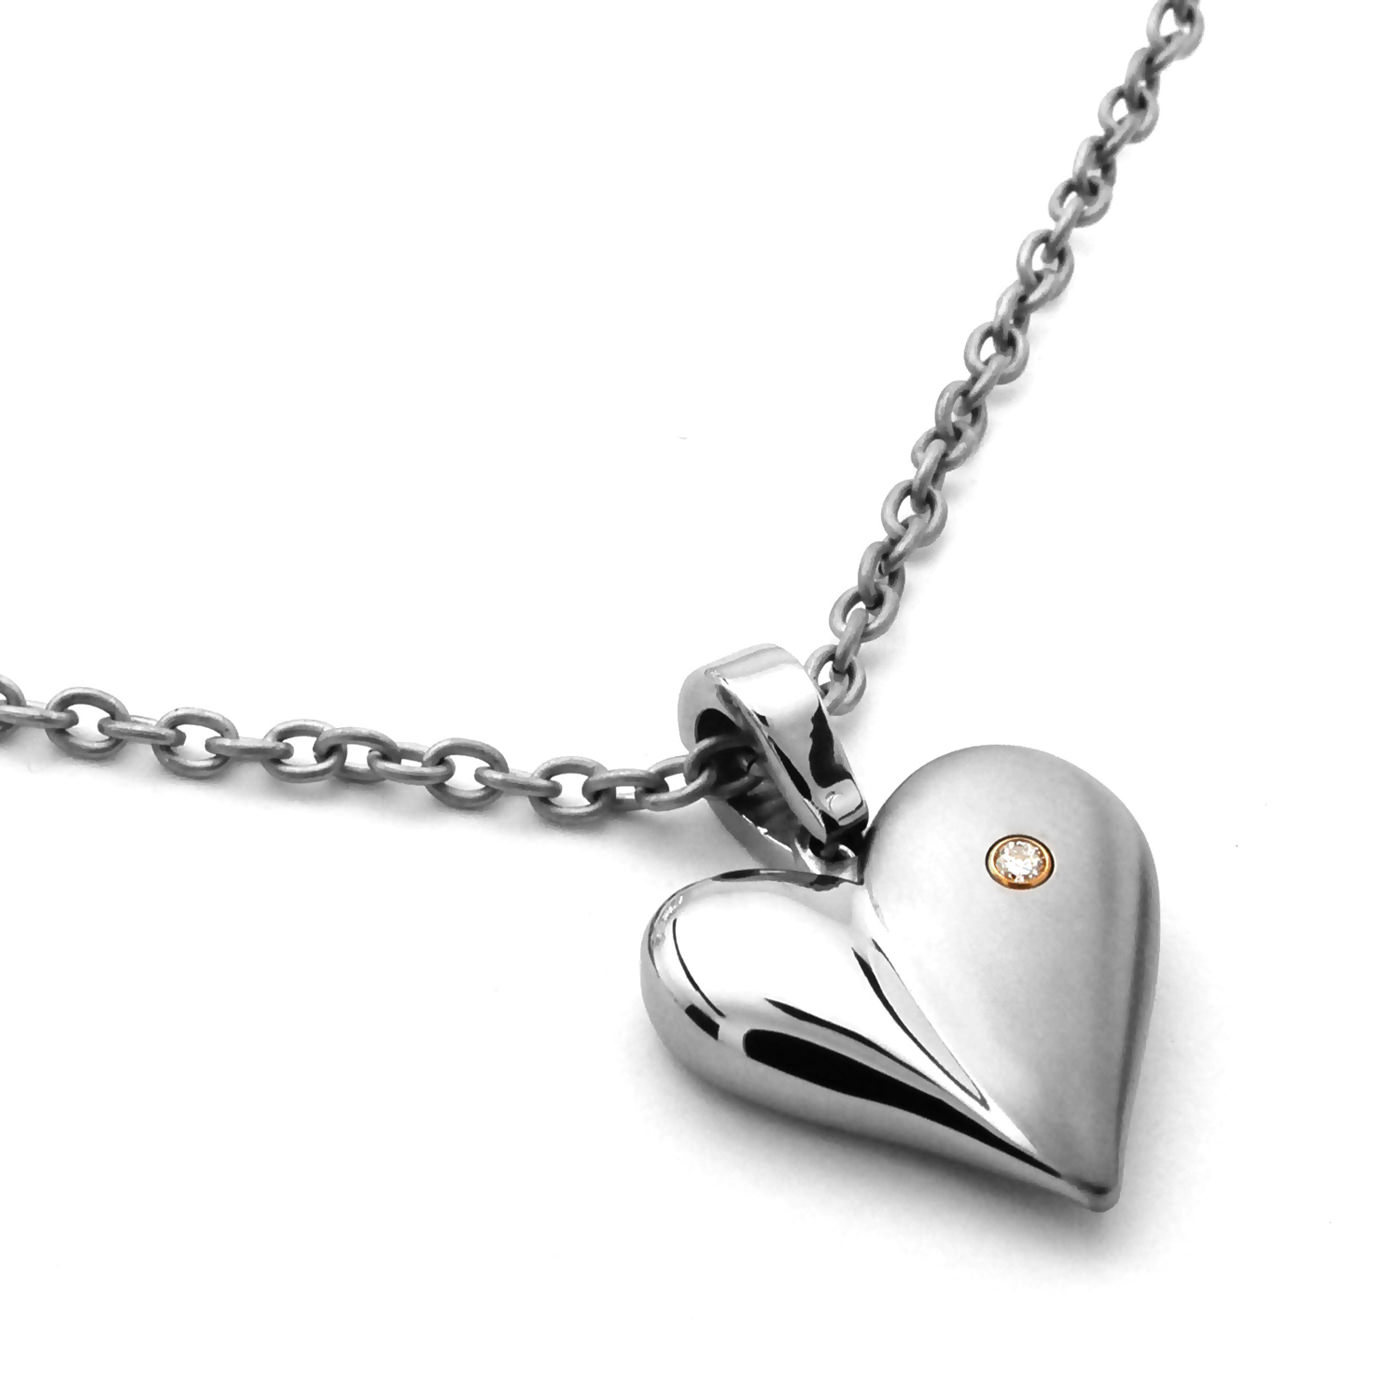 minthologie jewellery initial all heart vana shop necklace